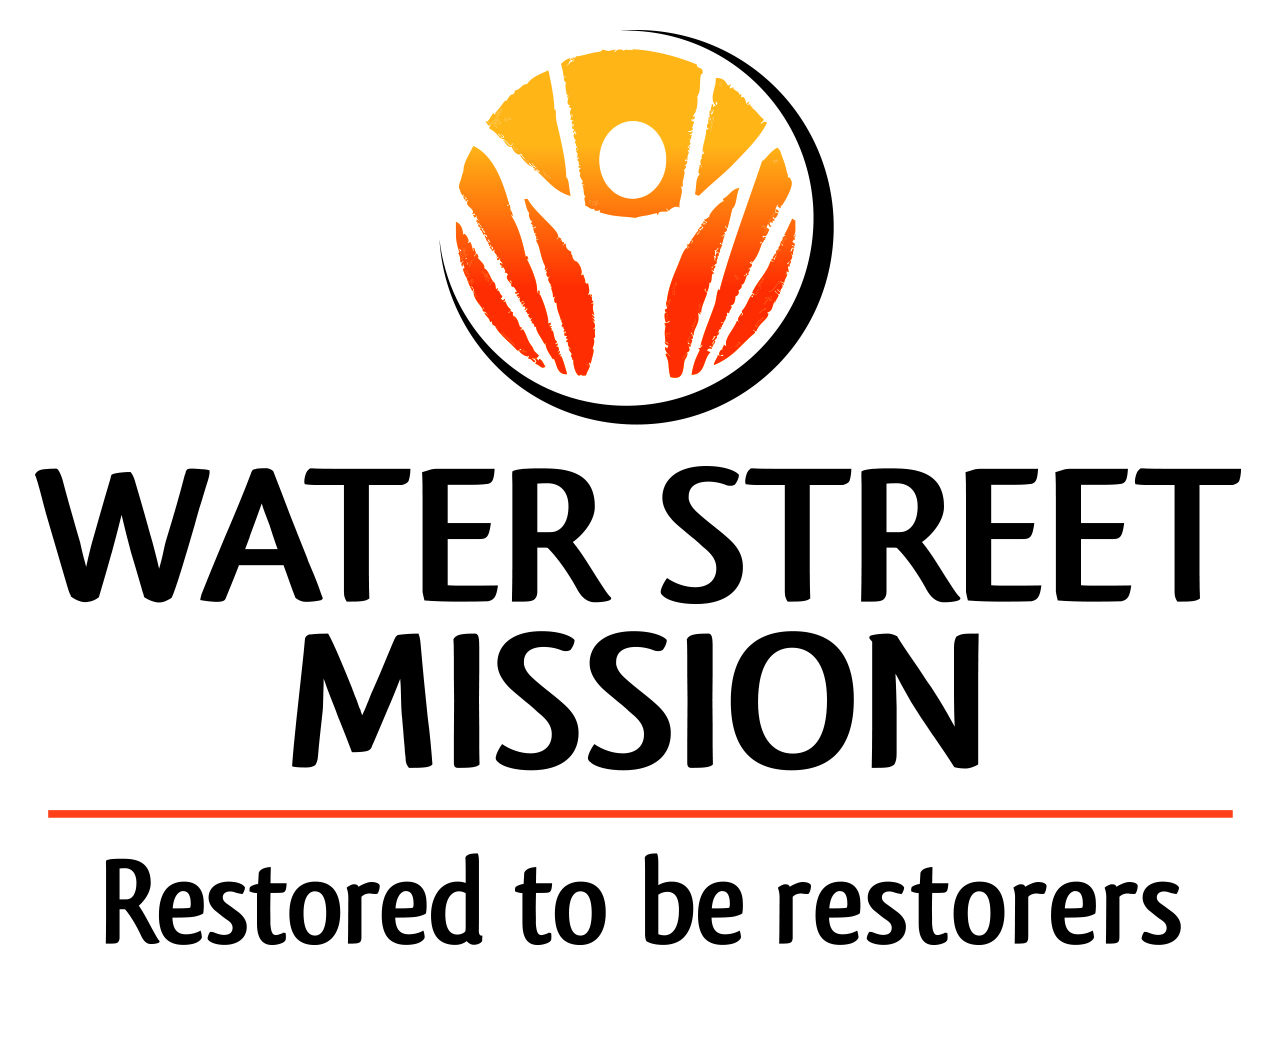 Water Street Mission logo